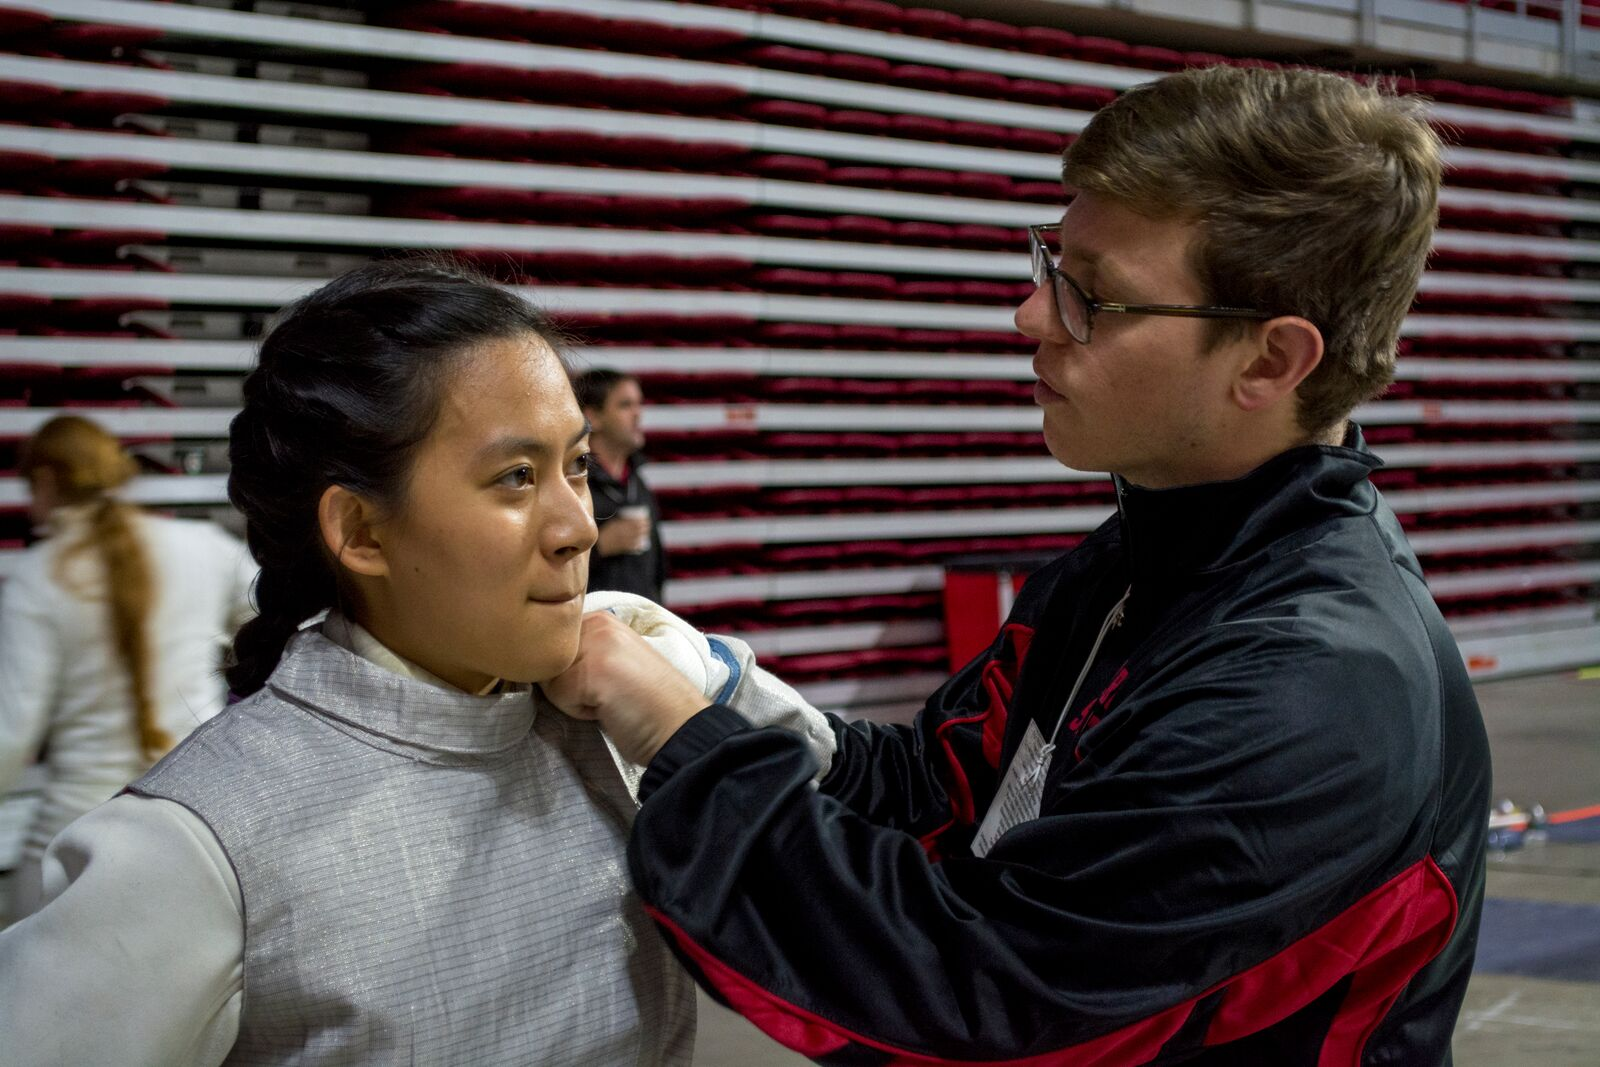 Stony Brook Fencing Club Coach Jeremy Allen (above, right) helps  sophomore foil fencer and first time competitor Sydney Jaw prepare for her first bout at the Temple Open. Jaw would go on to place 69th out of 81 in the Women's Foil division. CHRISTOPHER CAMERON/THE STATESMAN